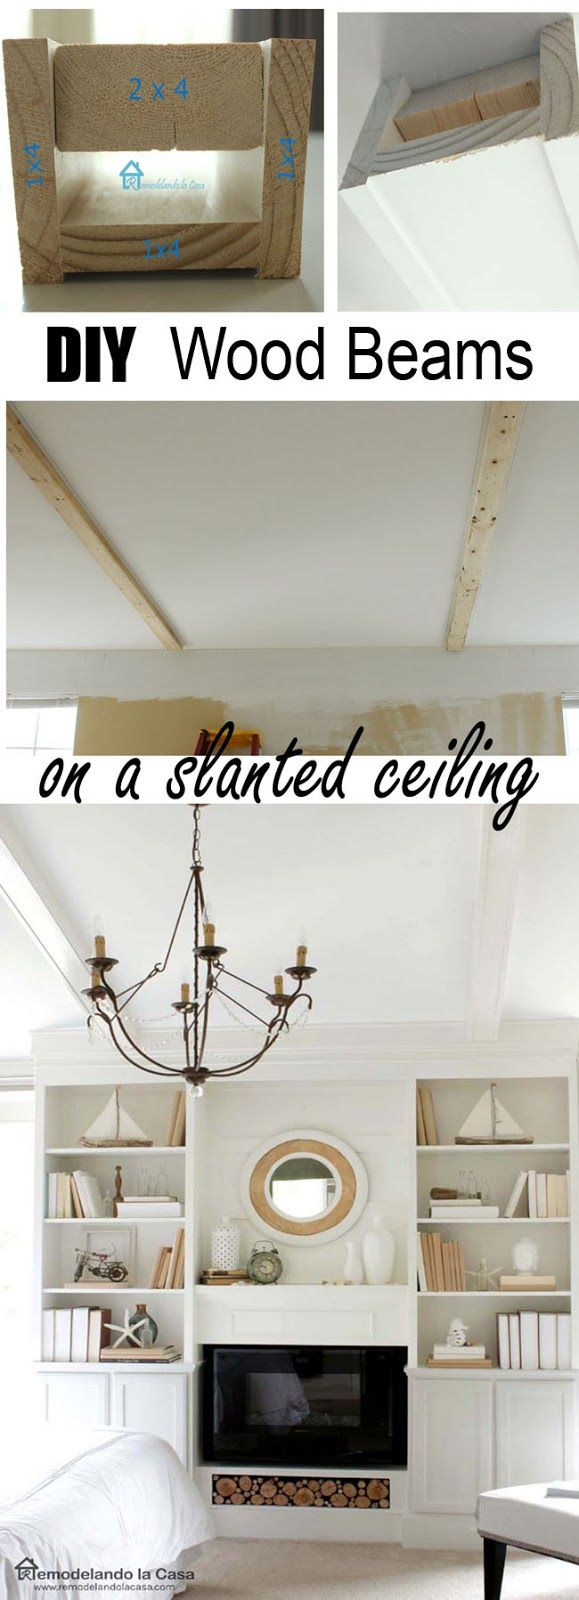 How to make and Install Faux Wooden Beams on a slanted ceiling